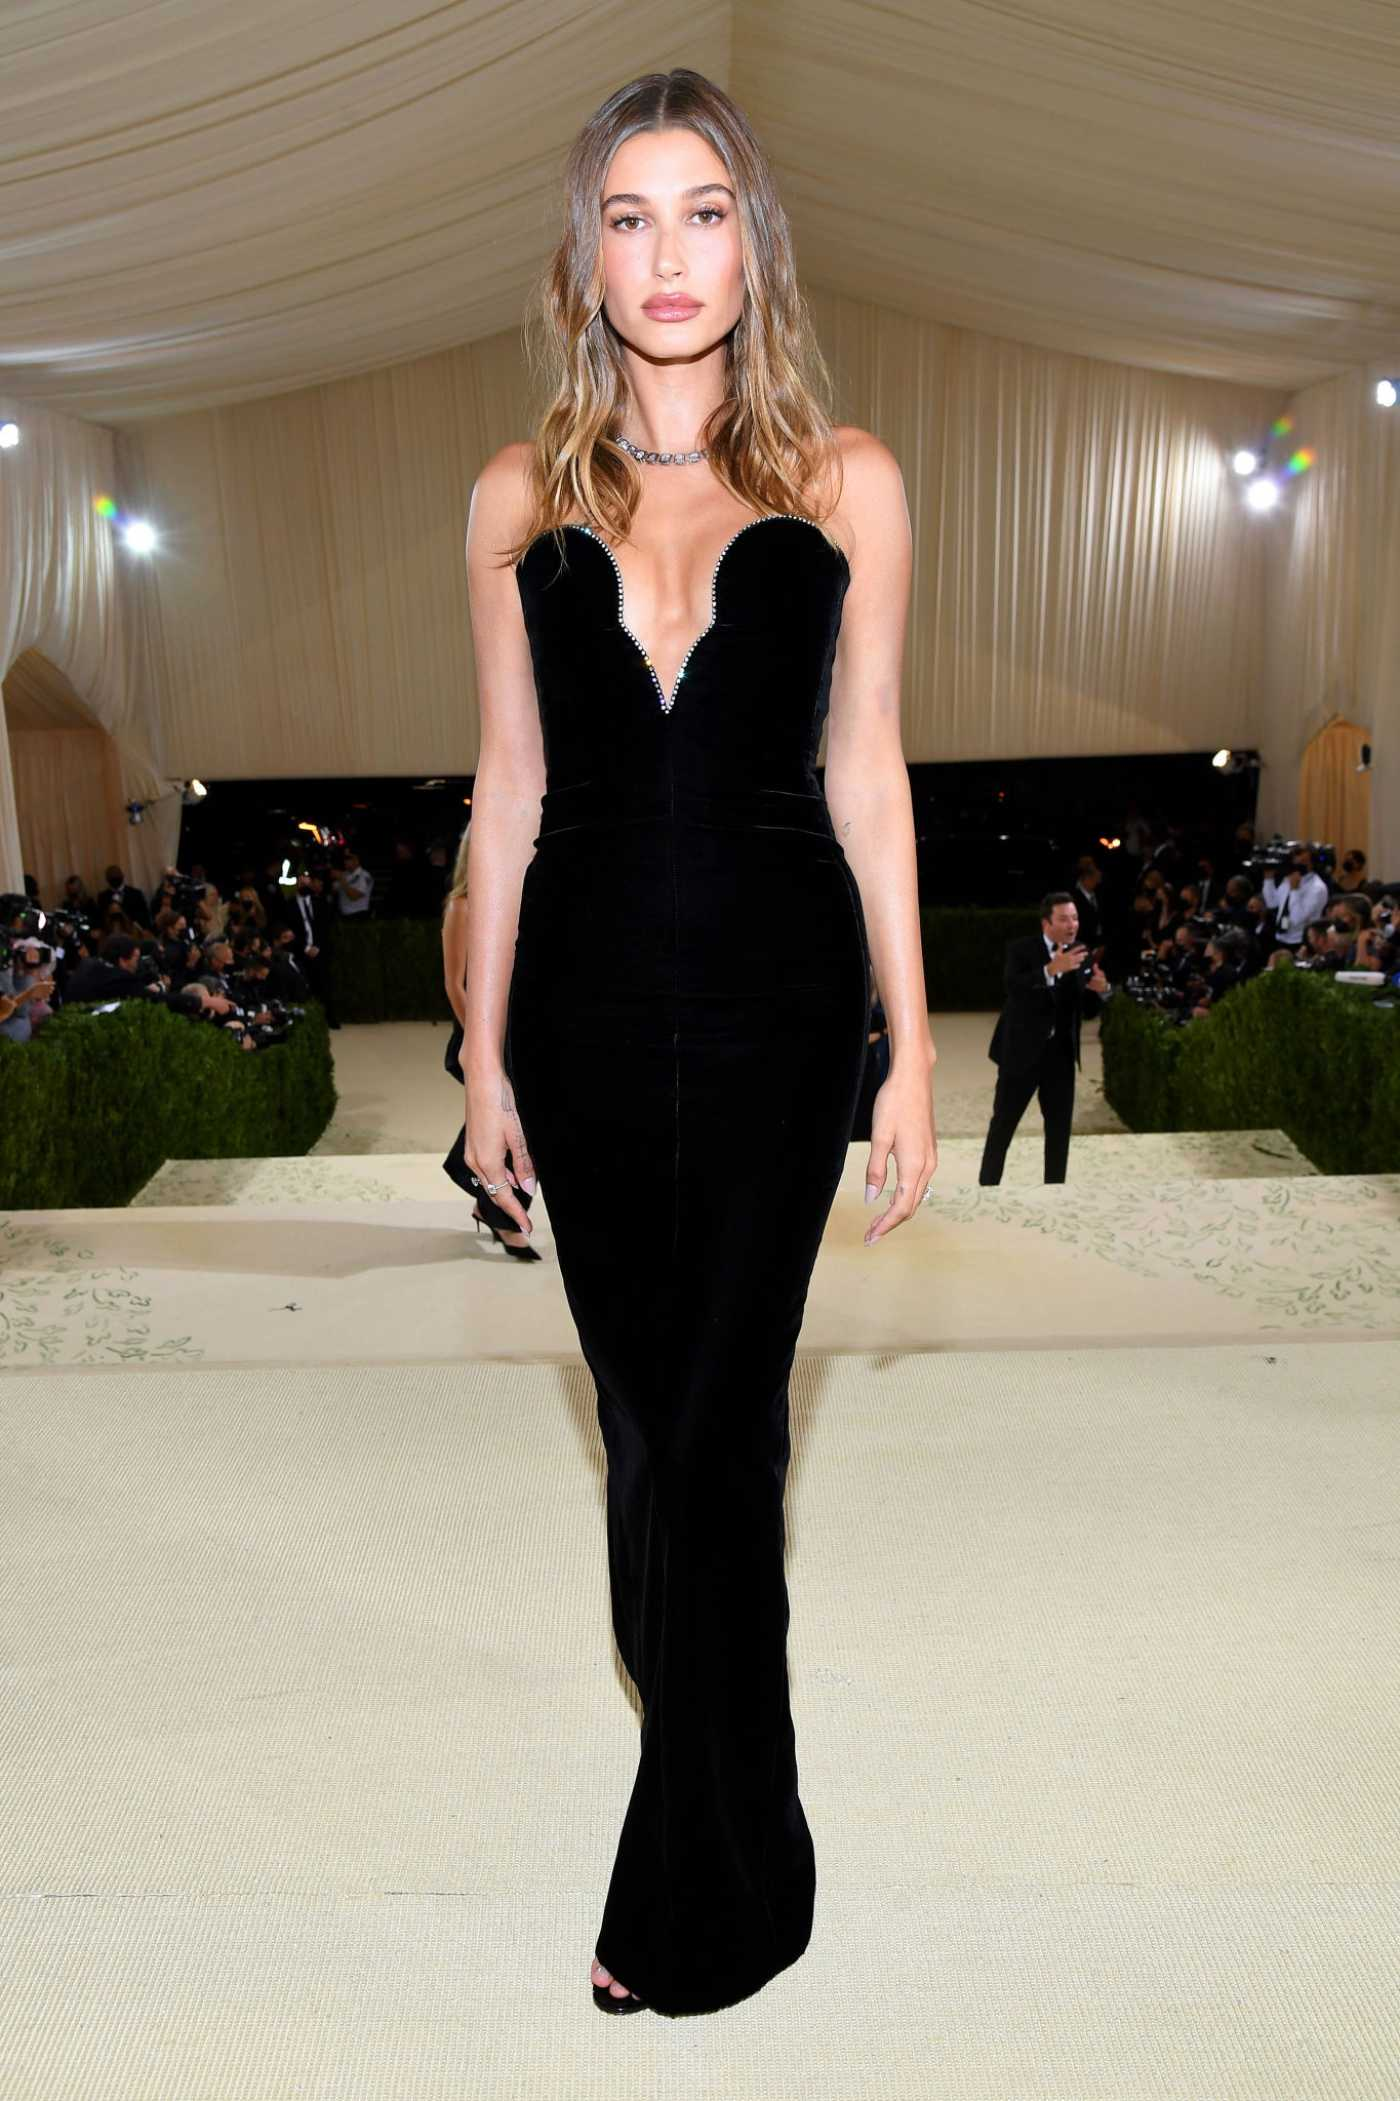 Hailey Baldwin Attends 2021 Met Gala In America: A Lexicon of Fashion at Metropolitan Museum of Art in New York City 09/13/2021